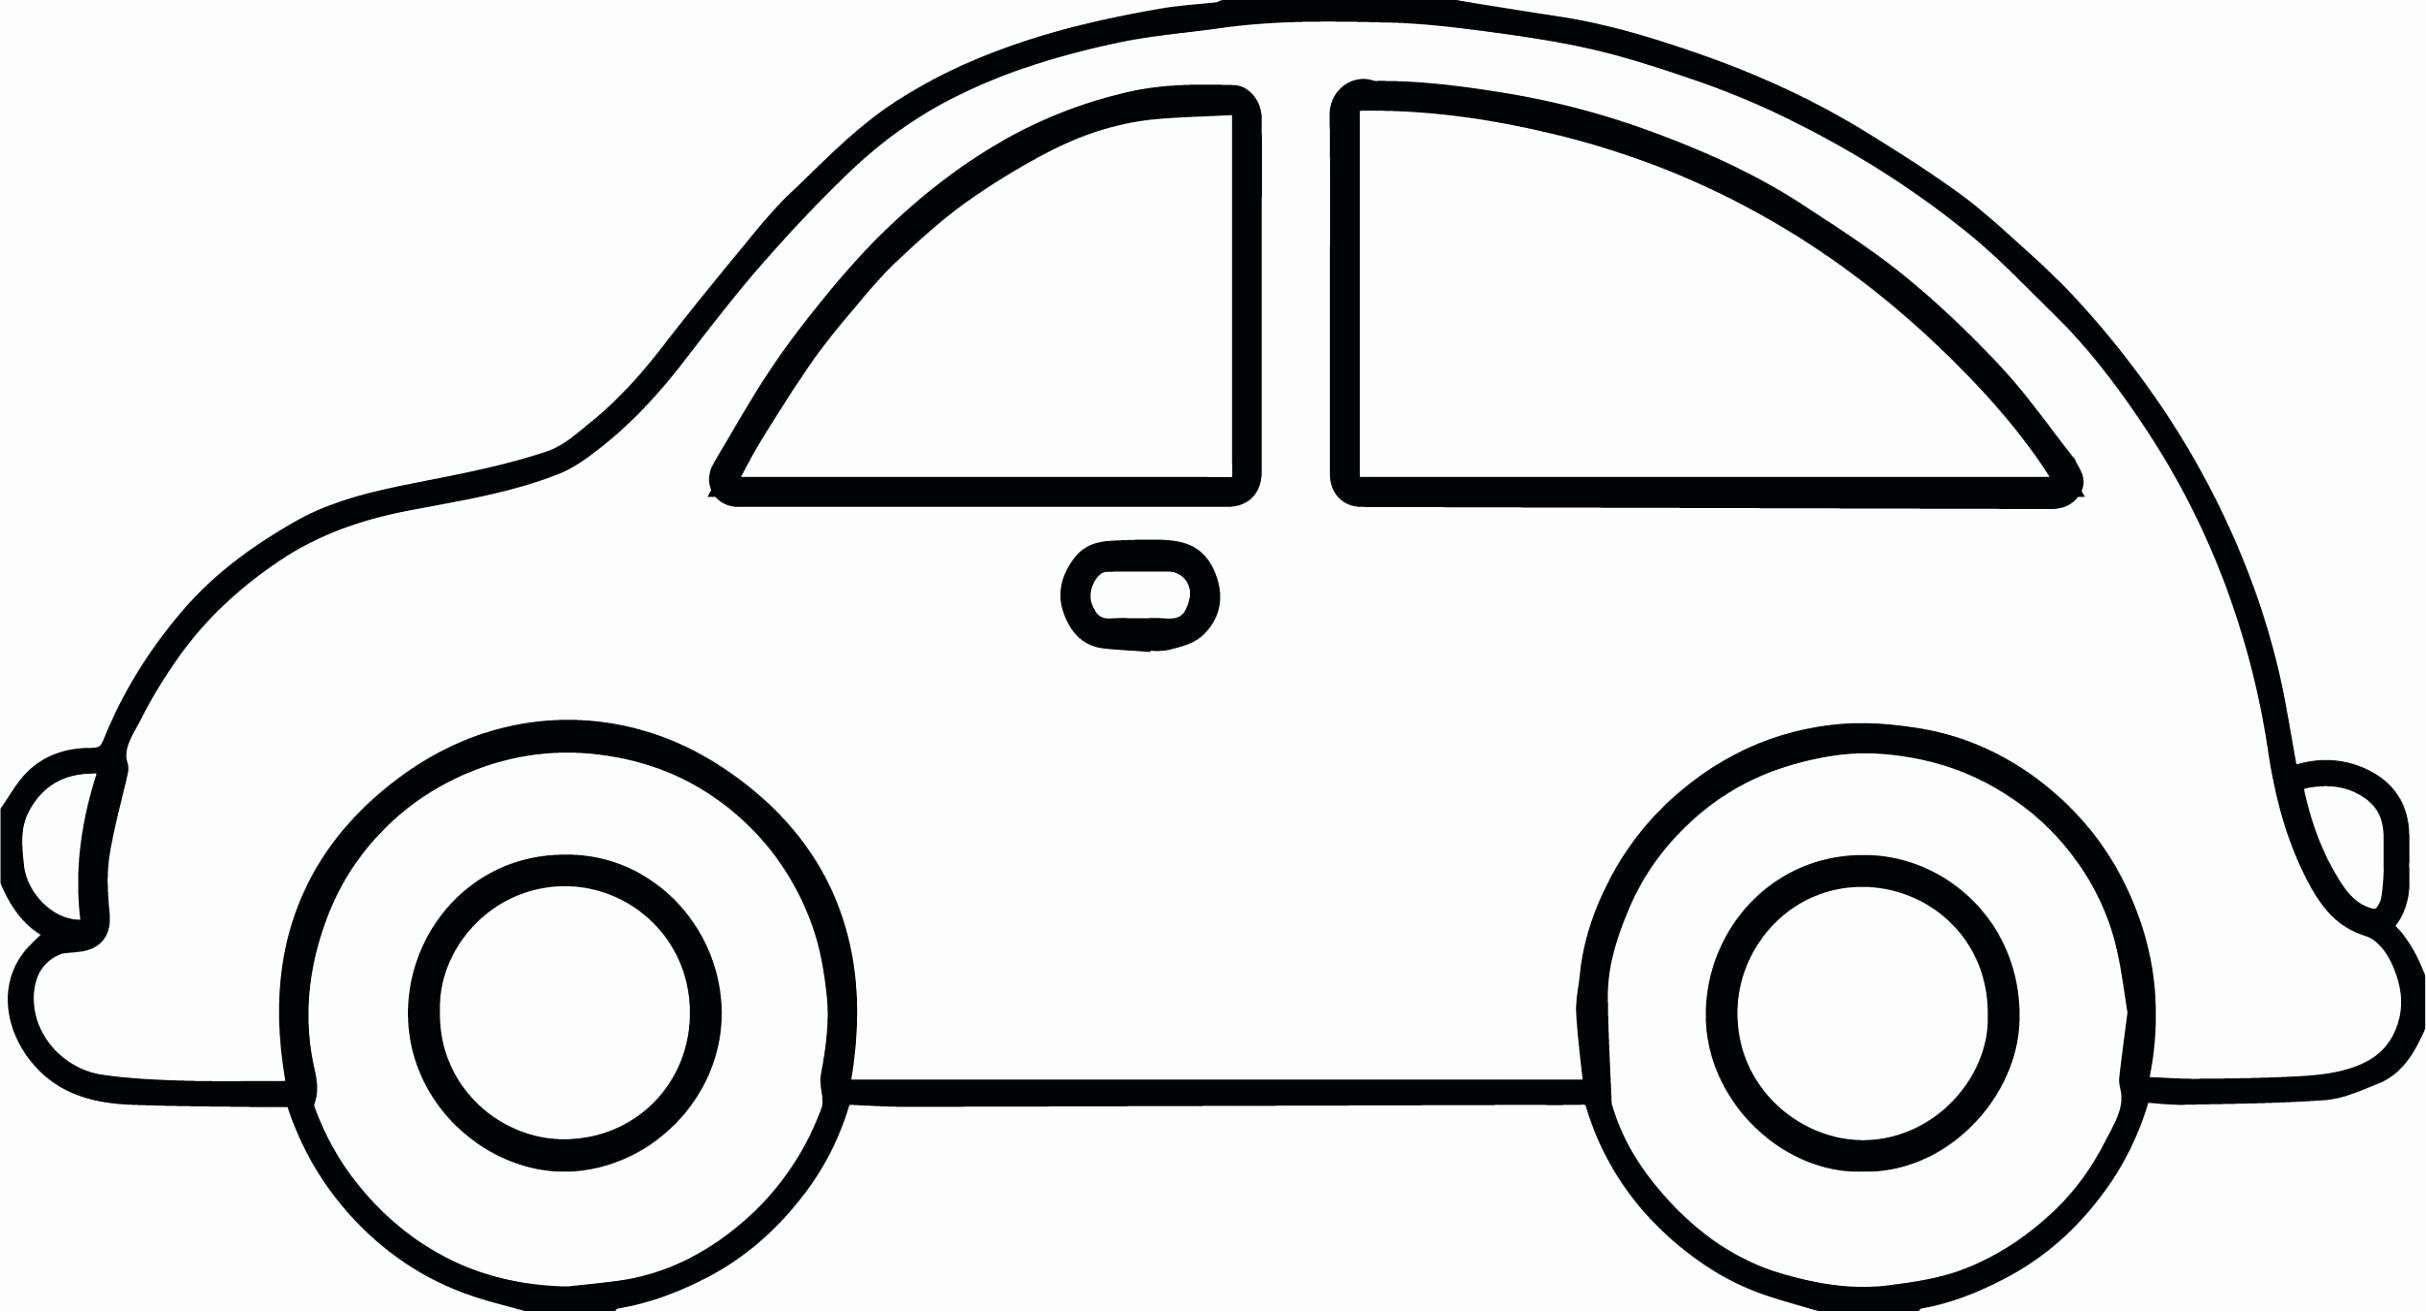 Car Coloring Pages For Toddlers Best Of Kids Car Coloring Pages Codeadventures In 2020 Cars Coloring Pages Easy Coloring Pages Race Car Coloring Pages